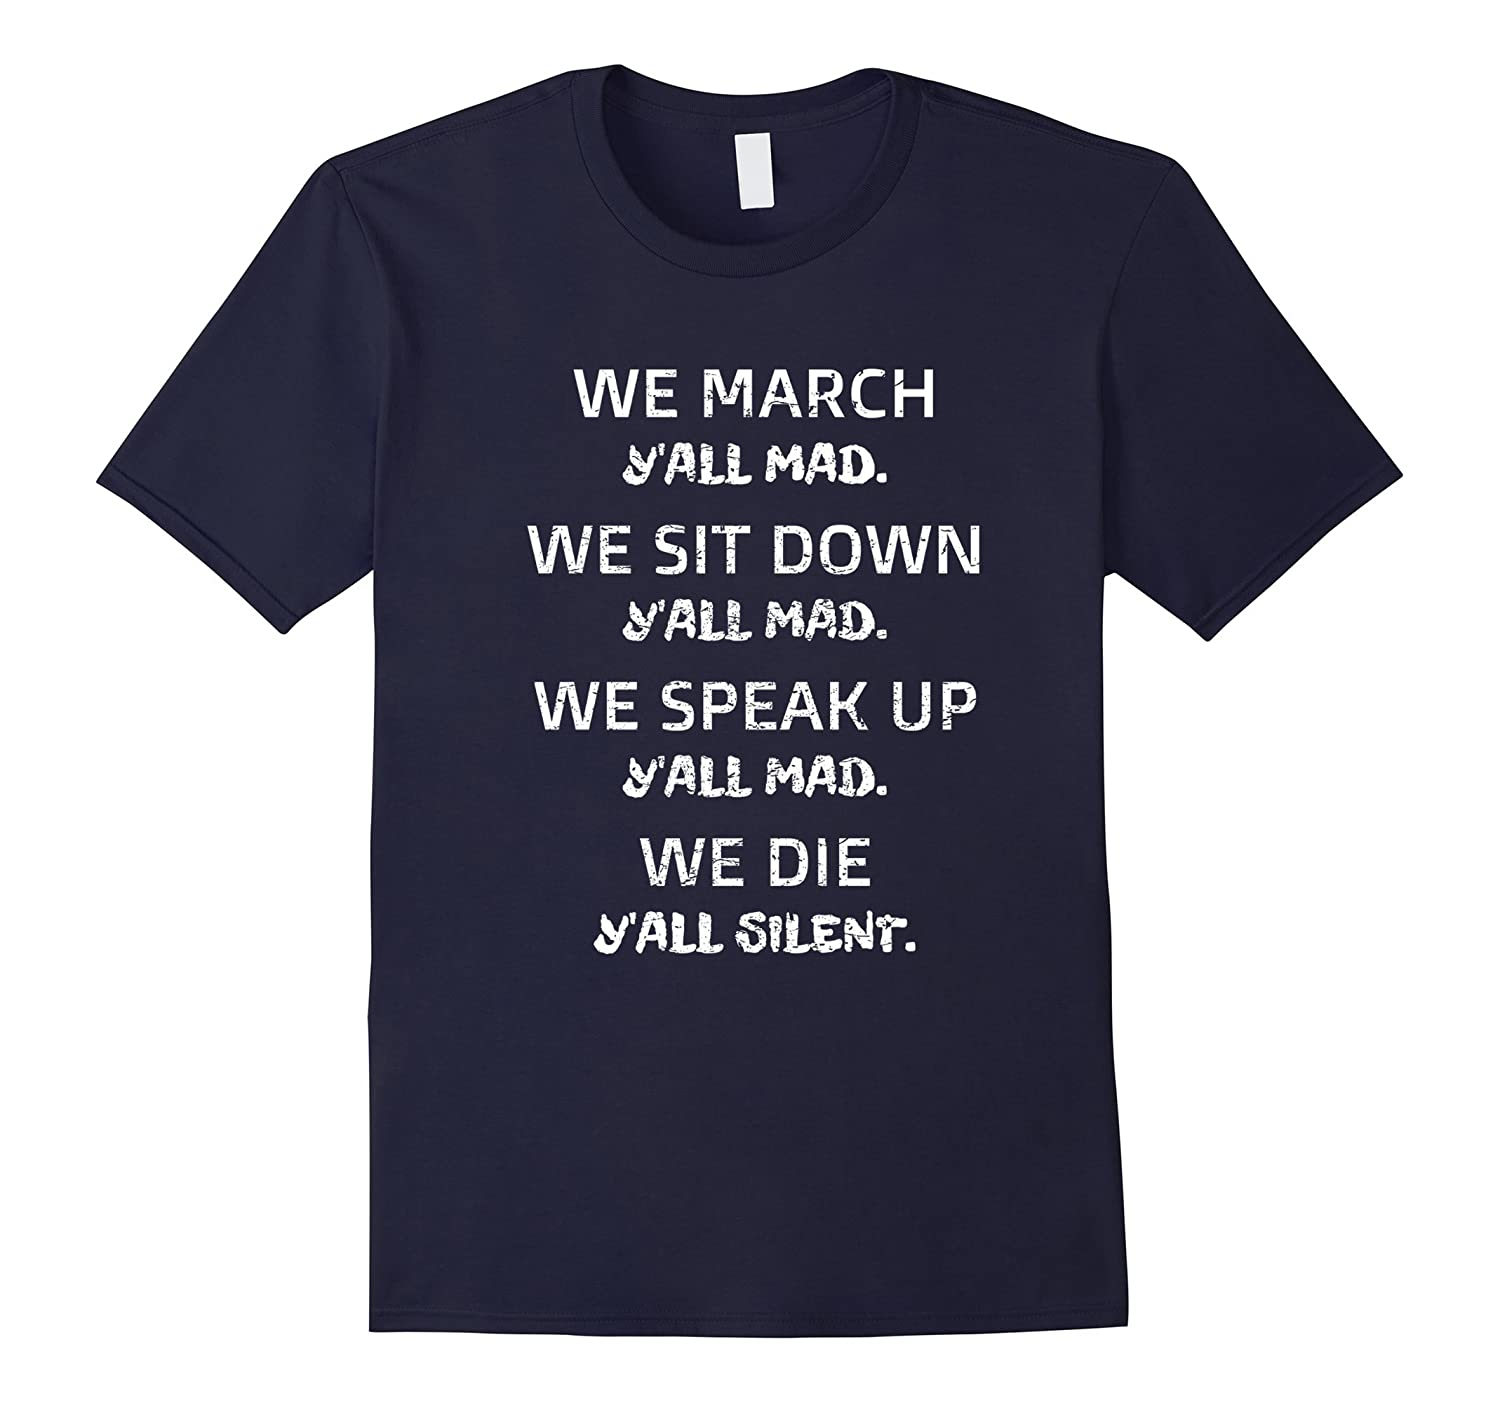 We March Y'all Mad - Black Pride T Shirt Men Women-FL